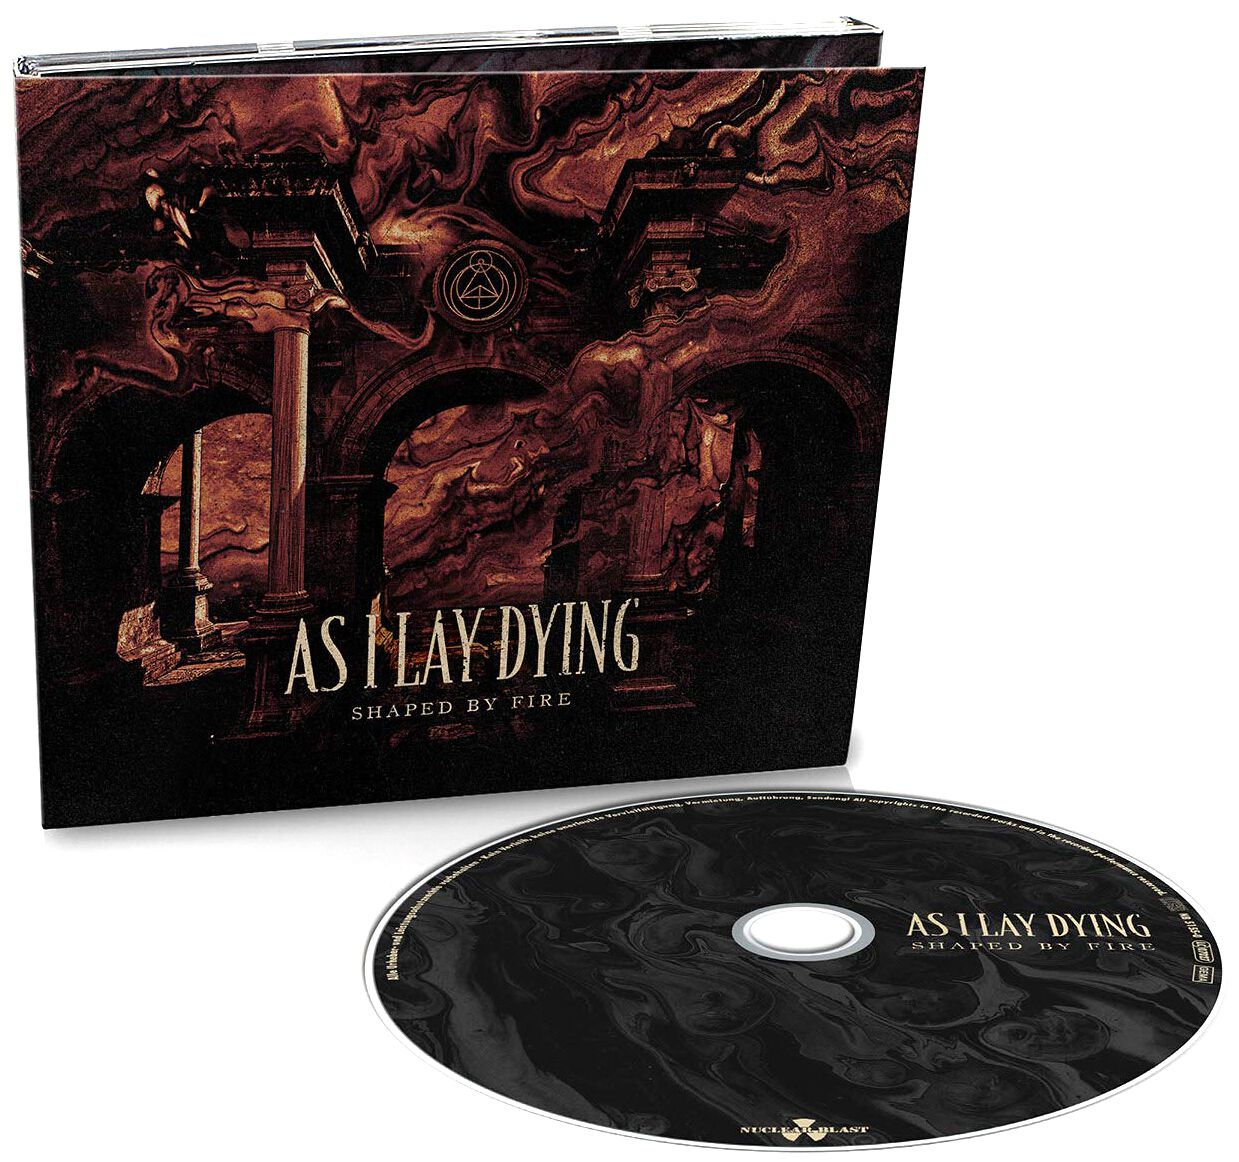 Image of As I Lay Dying Shaped by fire CD Standard